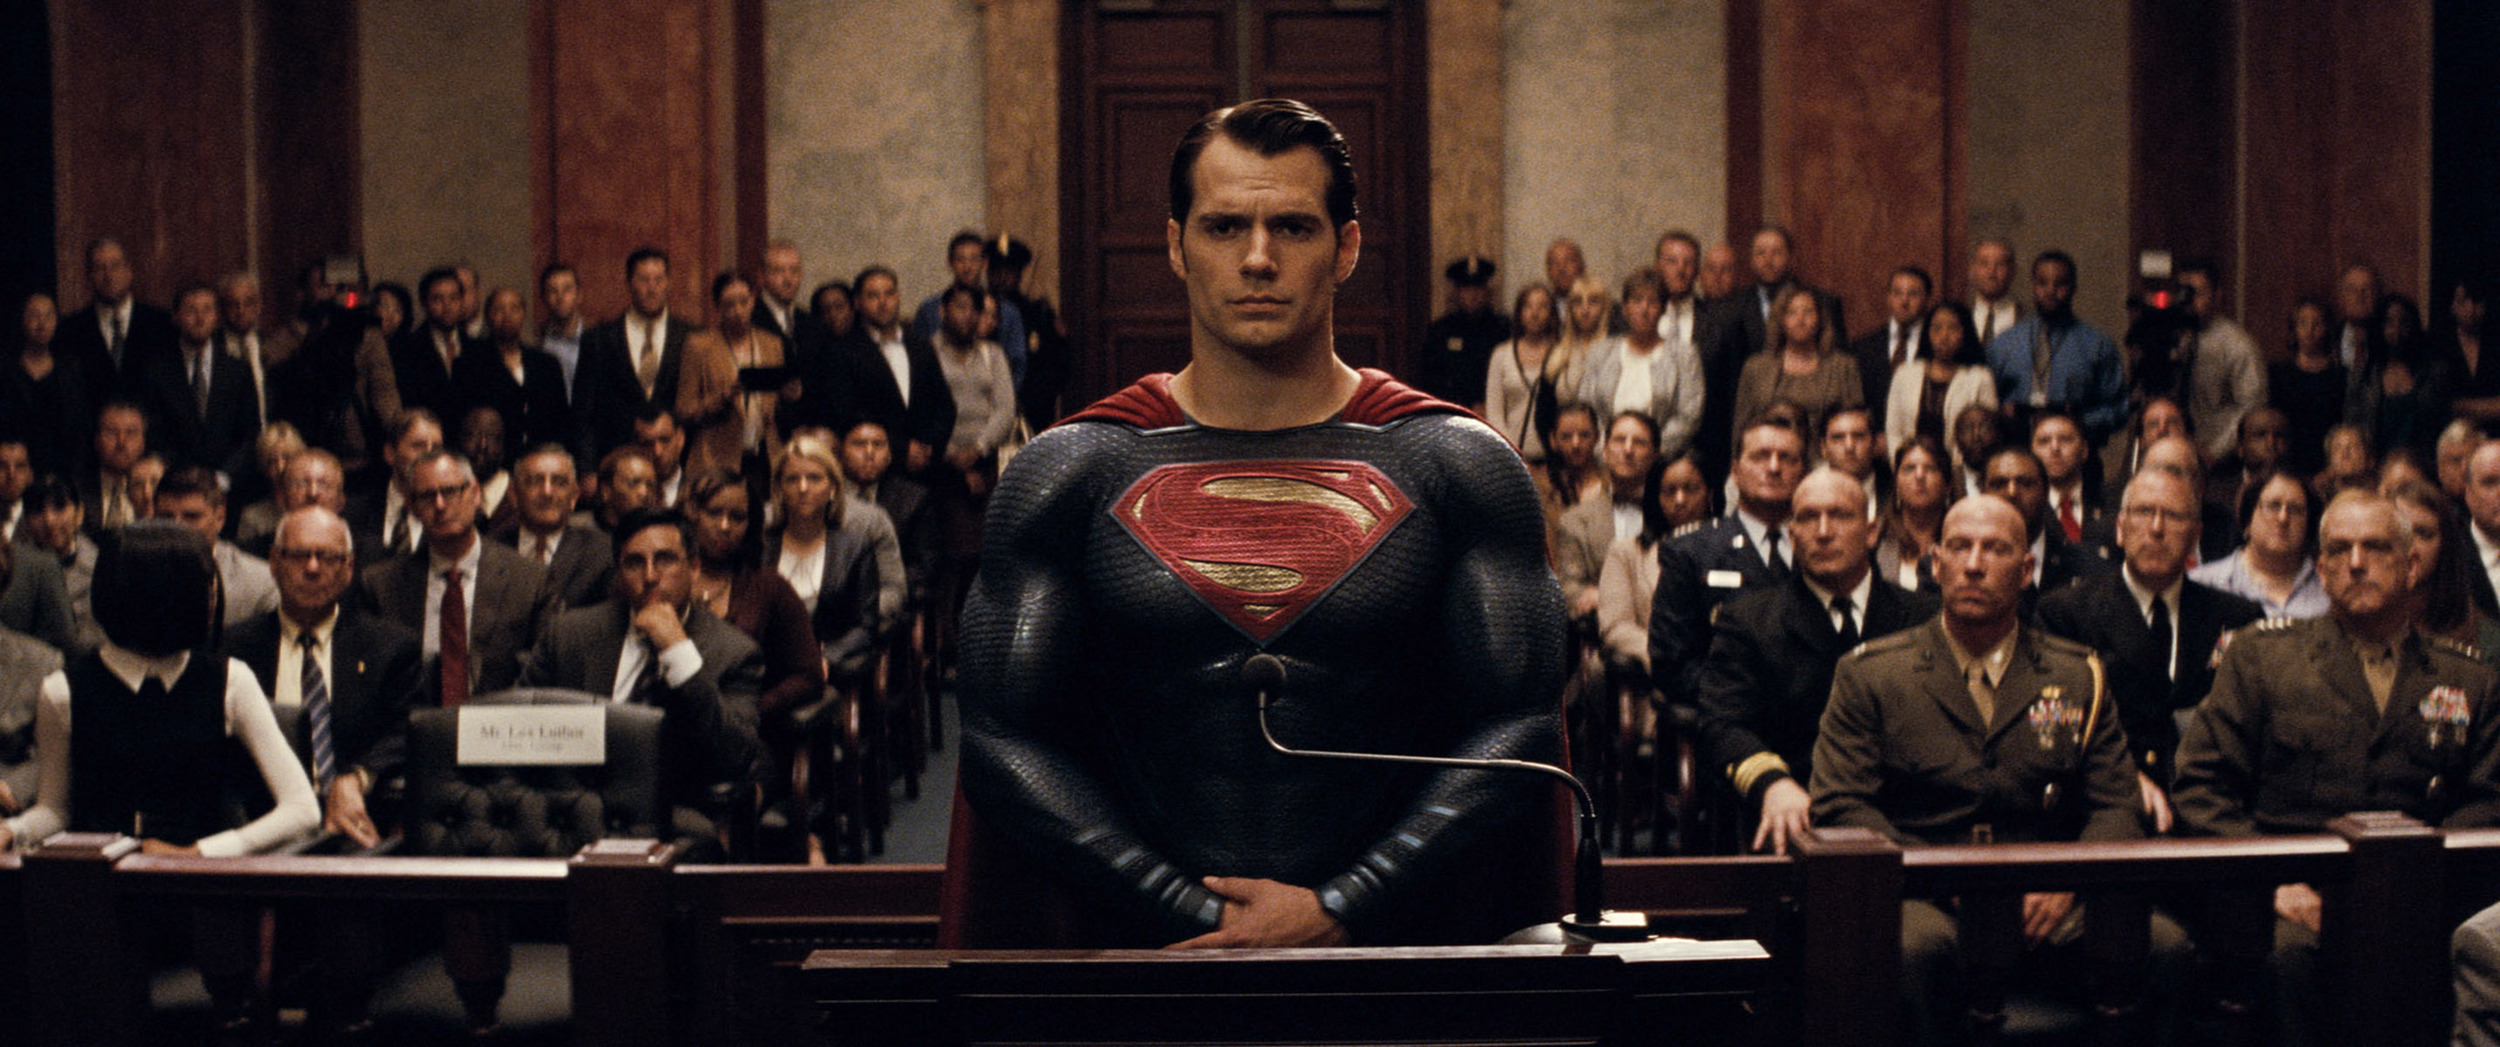 henry-cavill-batman-v-superman-dawn-of-justice.jpg